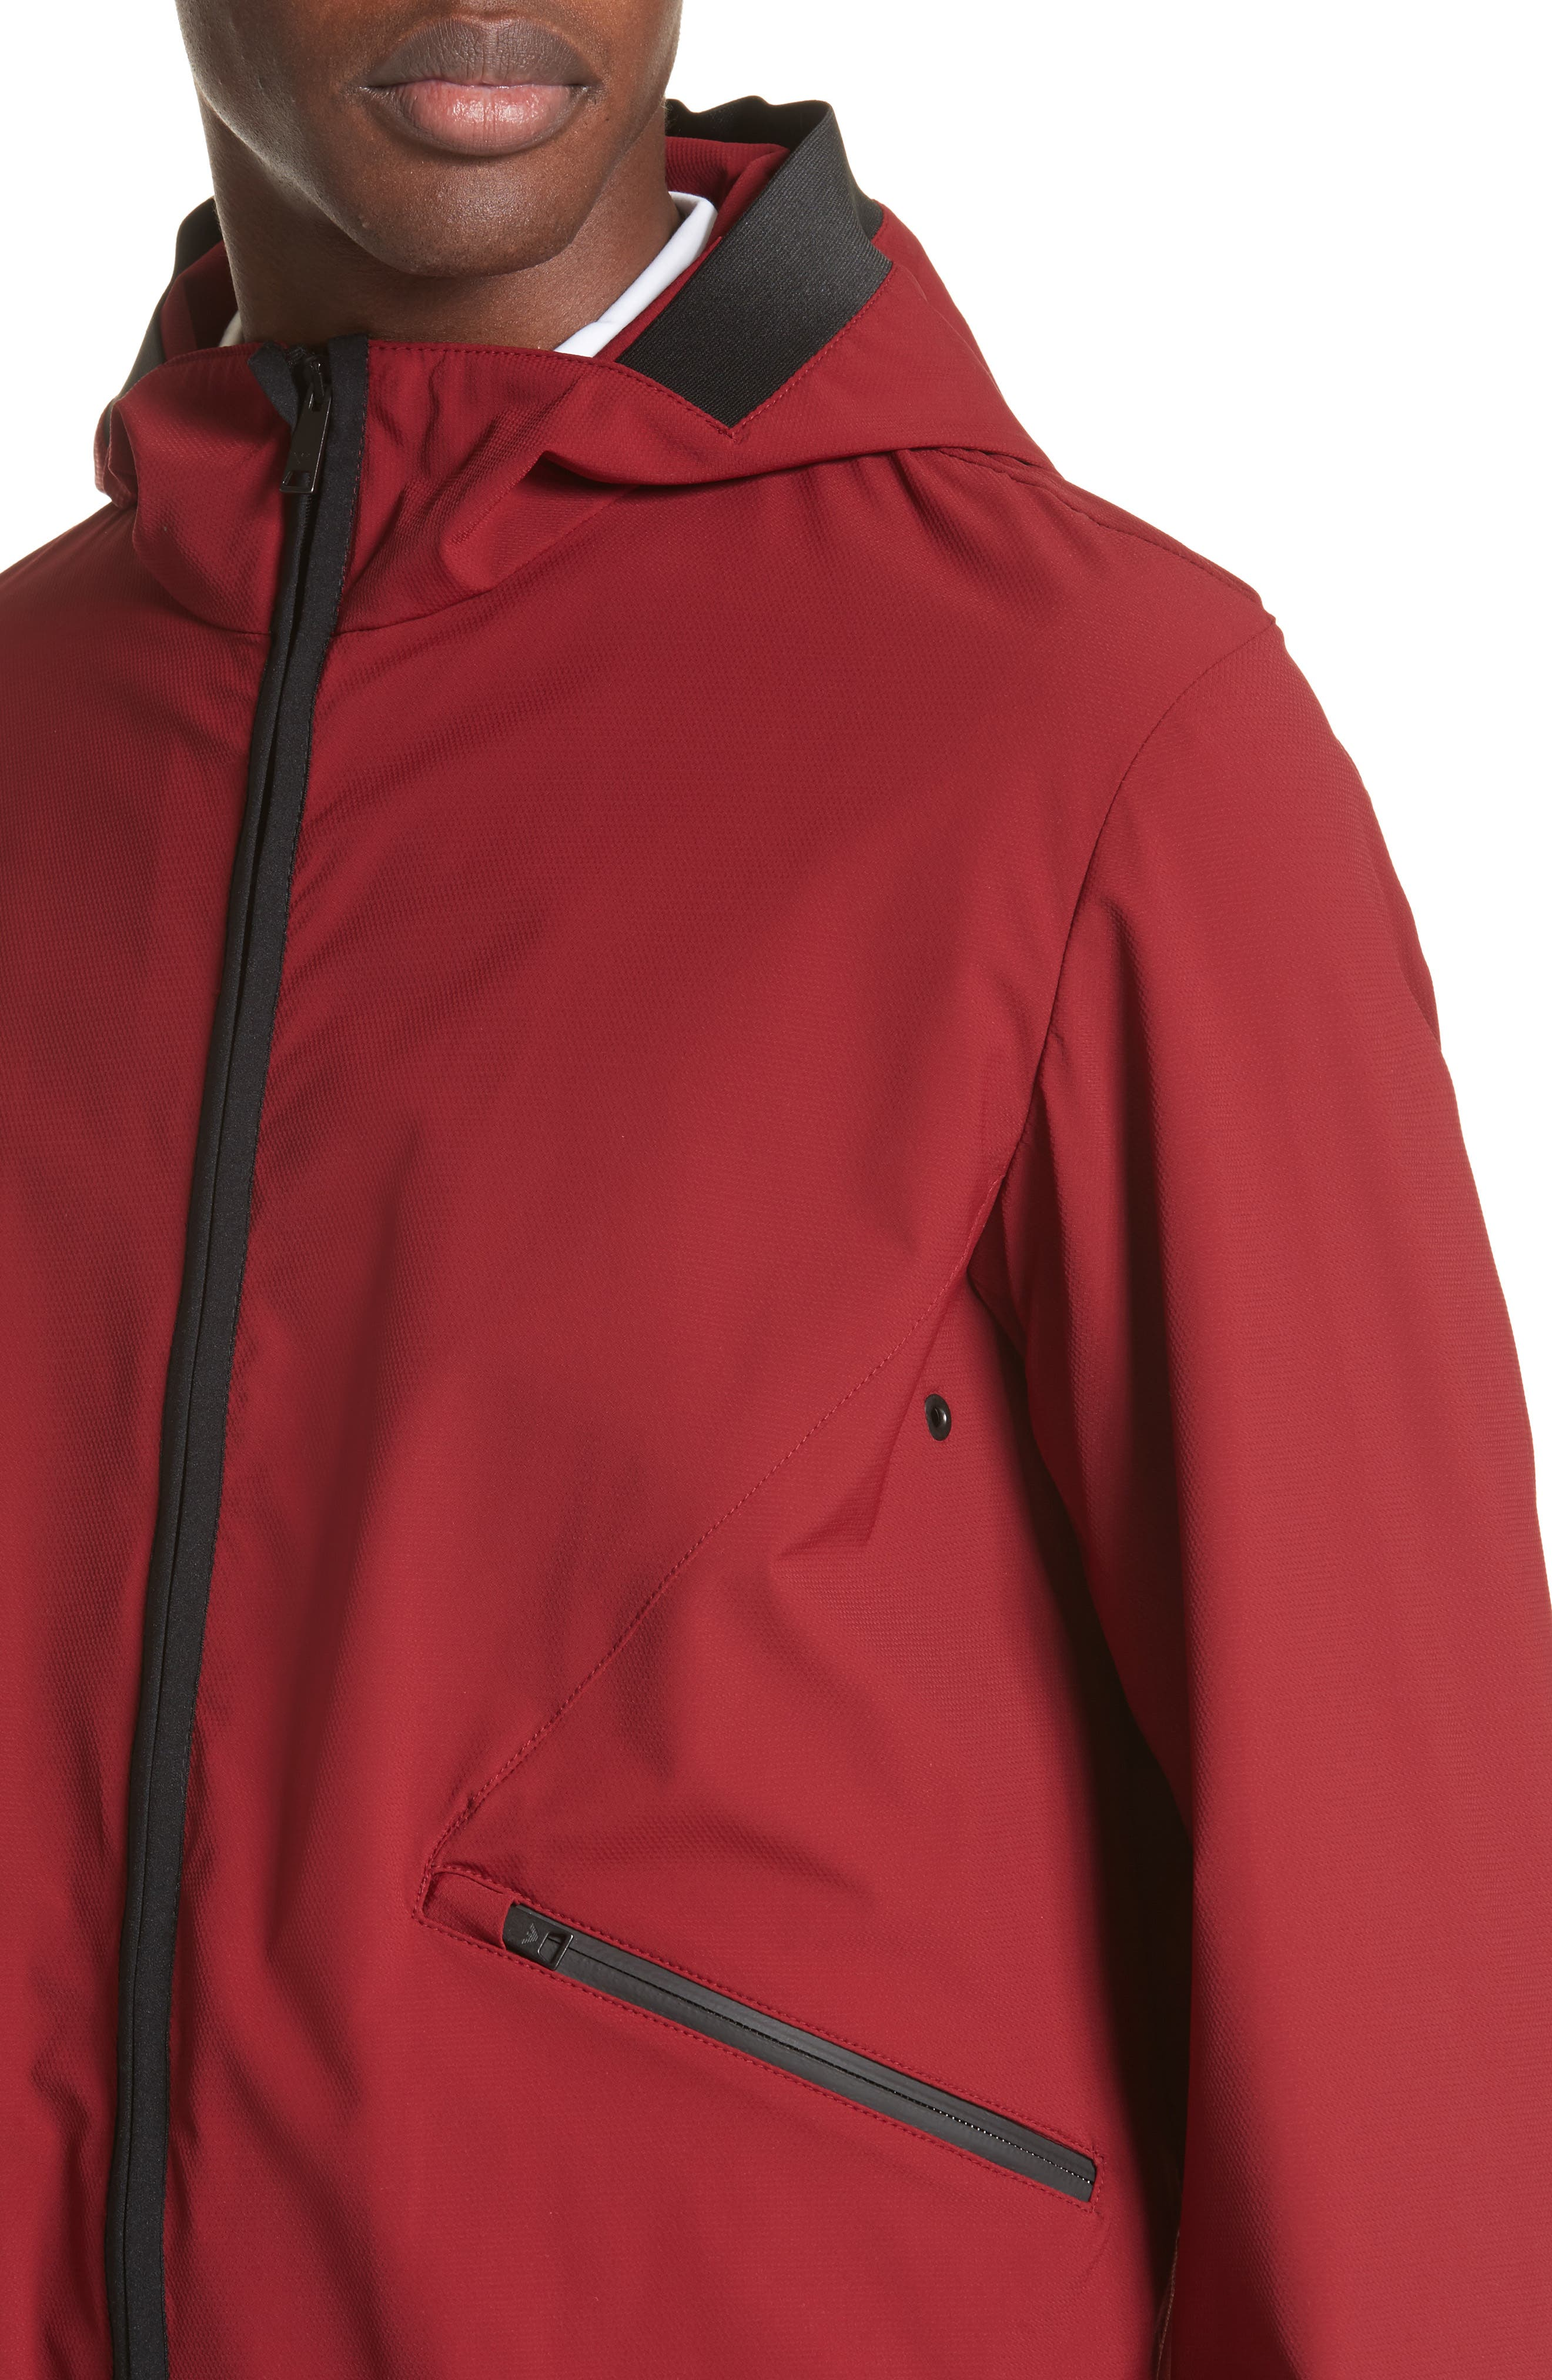 Water Repellent Jacket,                             Alternate thumbnail 4, color,                             Red